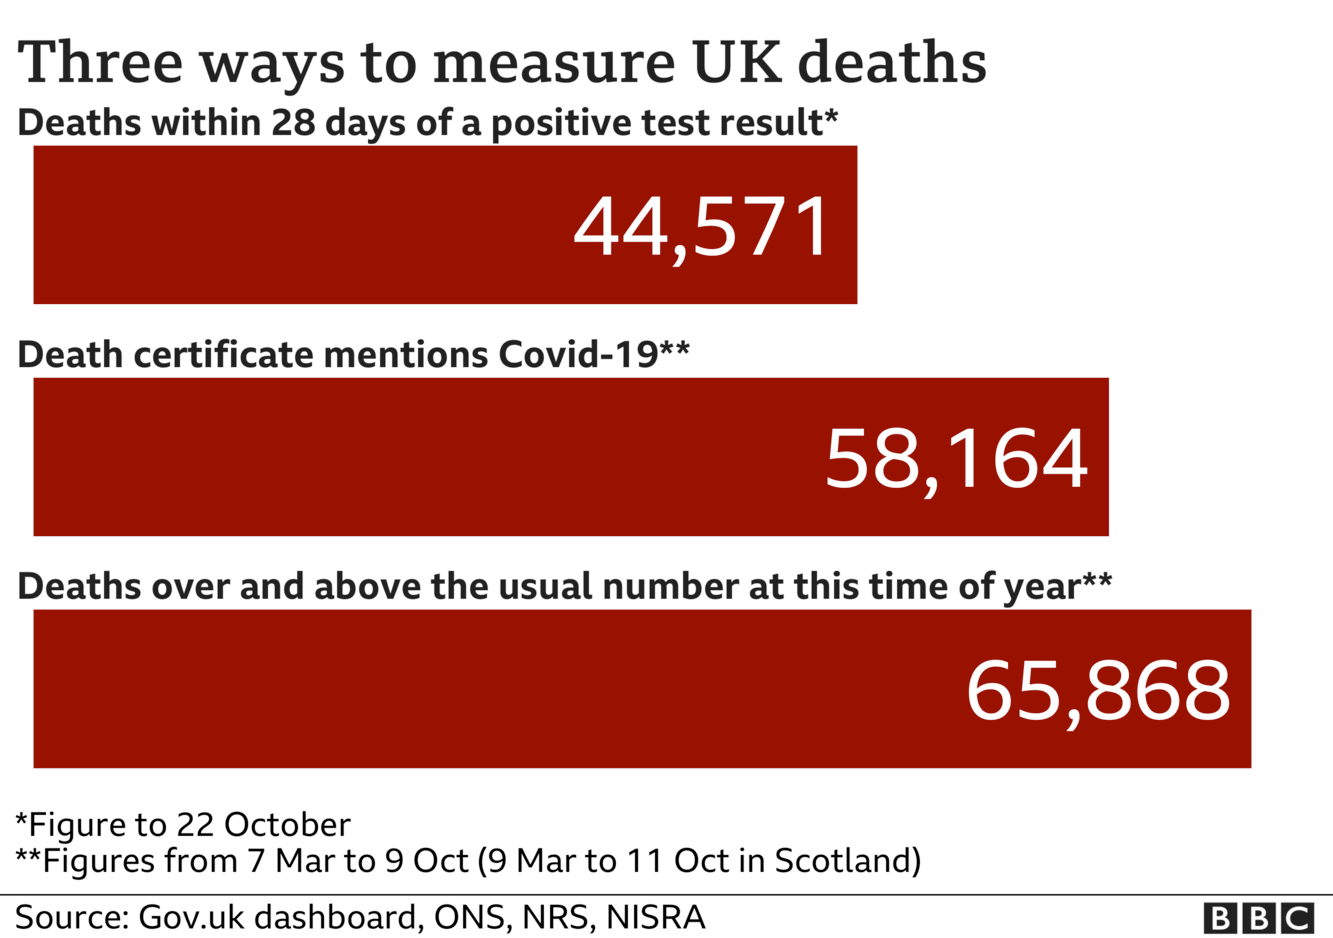 Chart shows three different ways to measures UK deaths - total is 44,571 according to government stats, ONS total of 58,164 includes everyone where coronavirus was mentioned on the death certificate and the excess deaths figures is 65,868